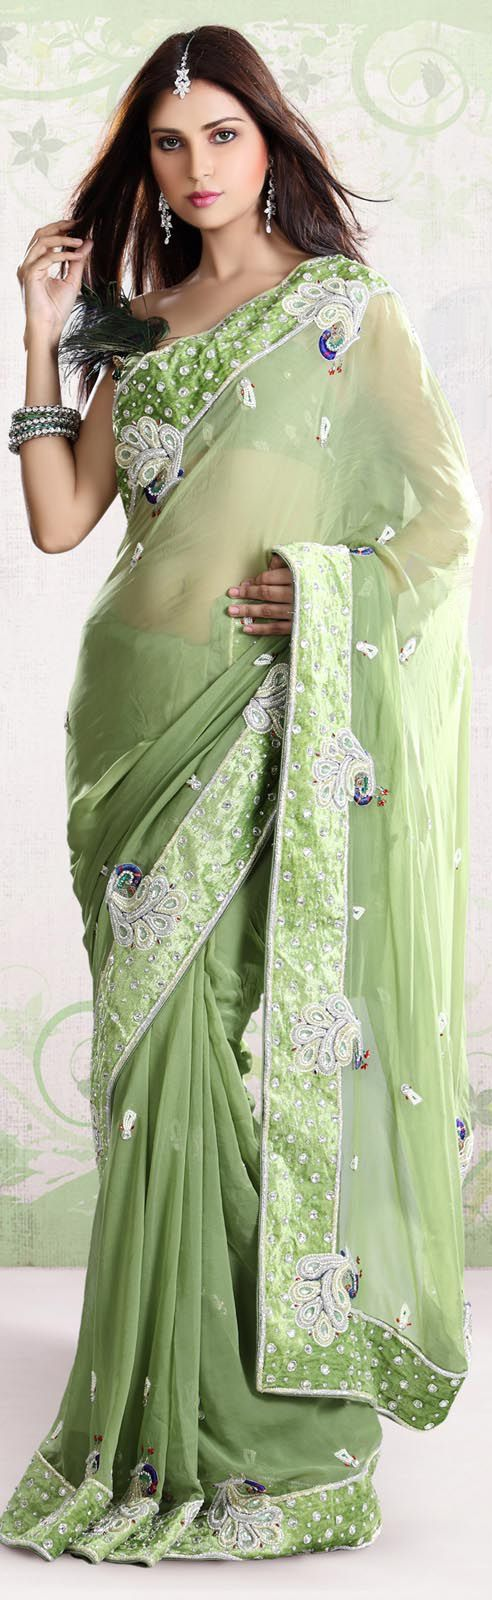 Indian Peacock Design Border Saree #saree #sari #blouse #indian #hp #outfit #shaadi #bridal #fashion #style #desi #designer #wedding #gorgeous #beautiful